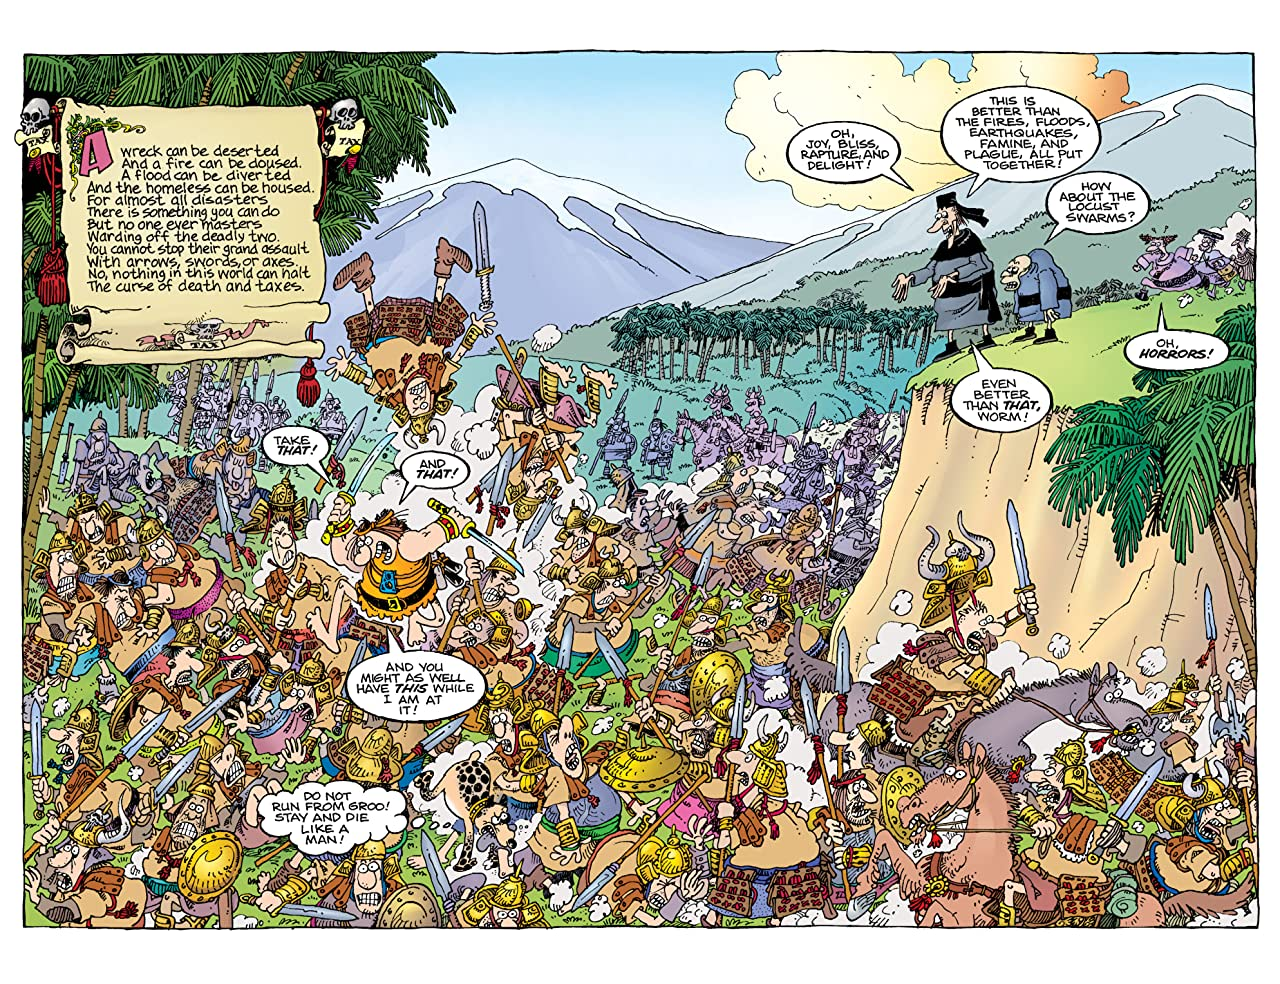 Sergio Aragones' Groo: Death and Taxes